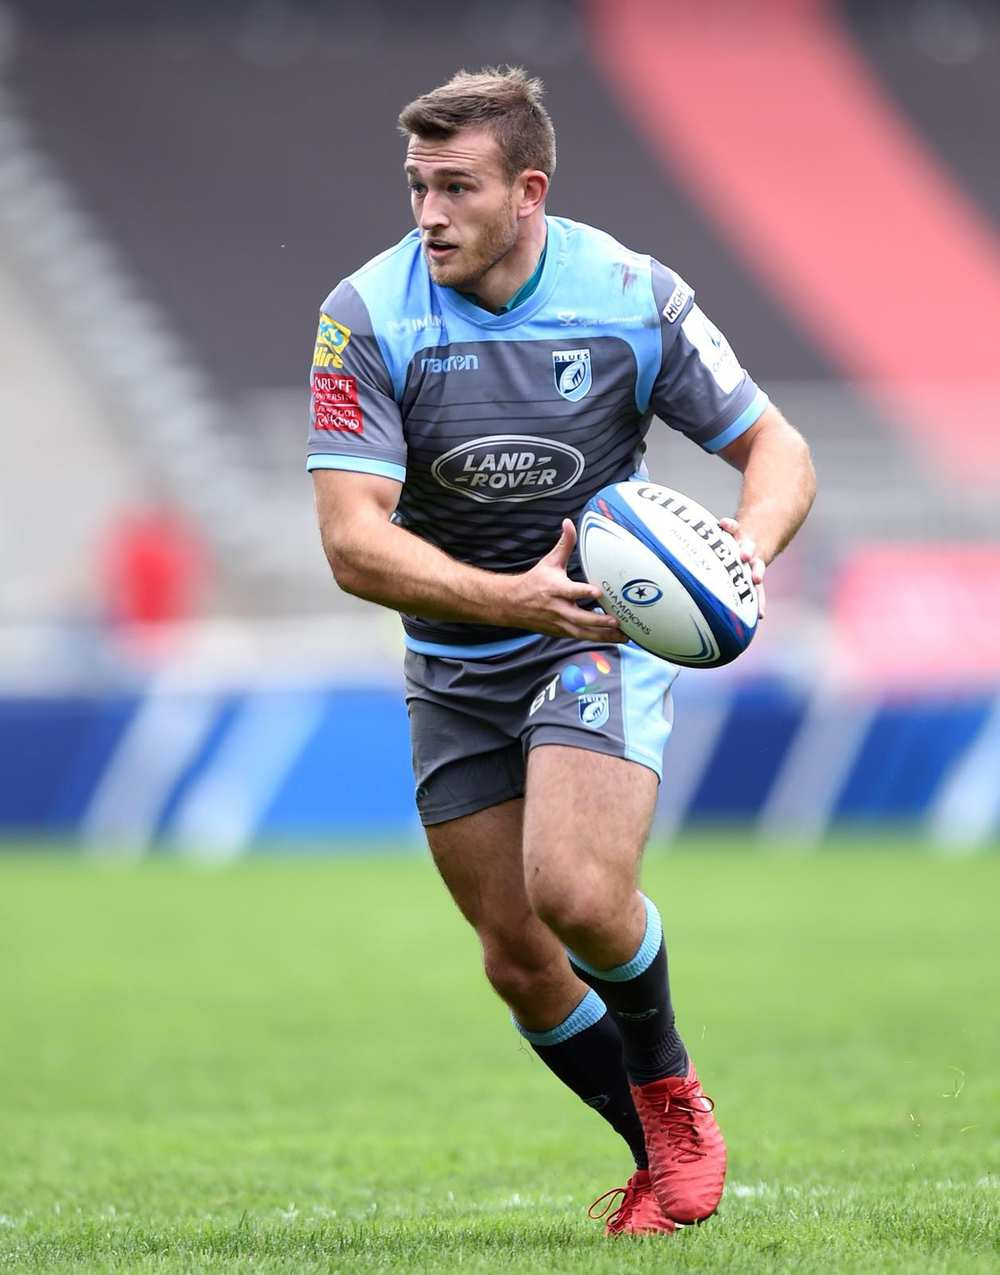 Garyn Smith, Cardiff Blues and USW alumni